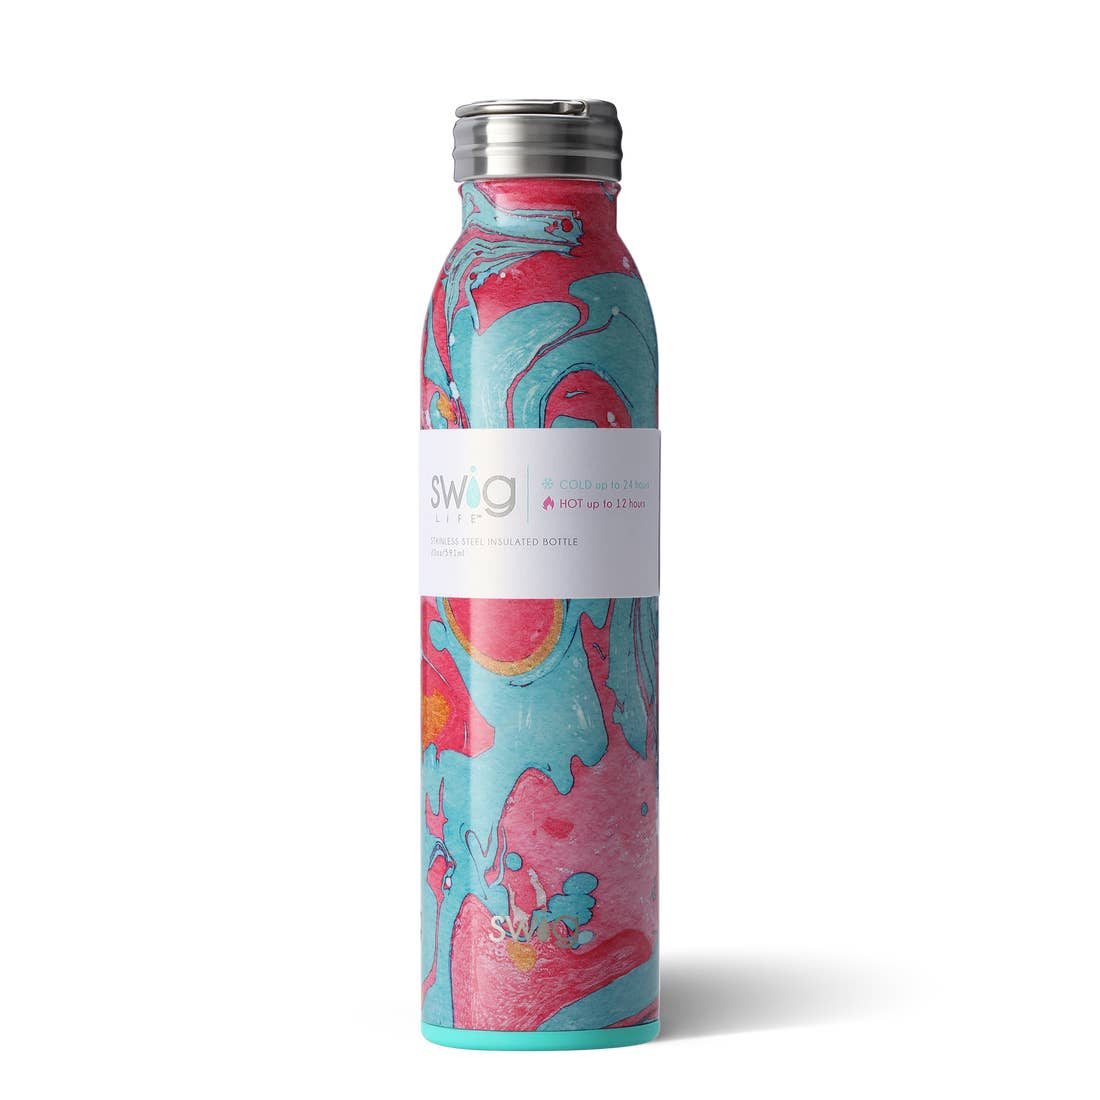 Cotton Candy Signature Bottle